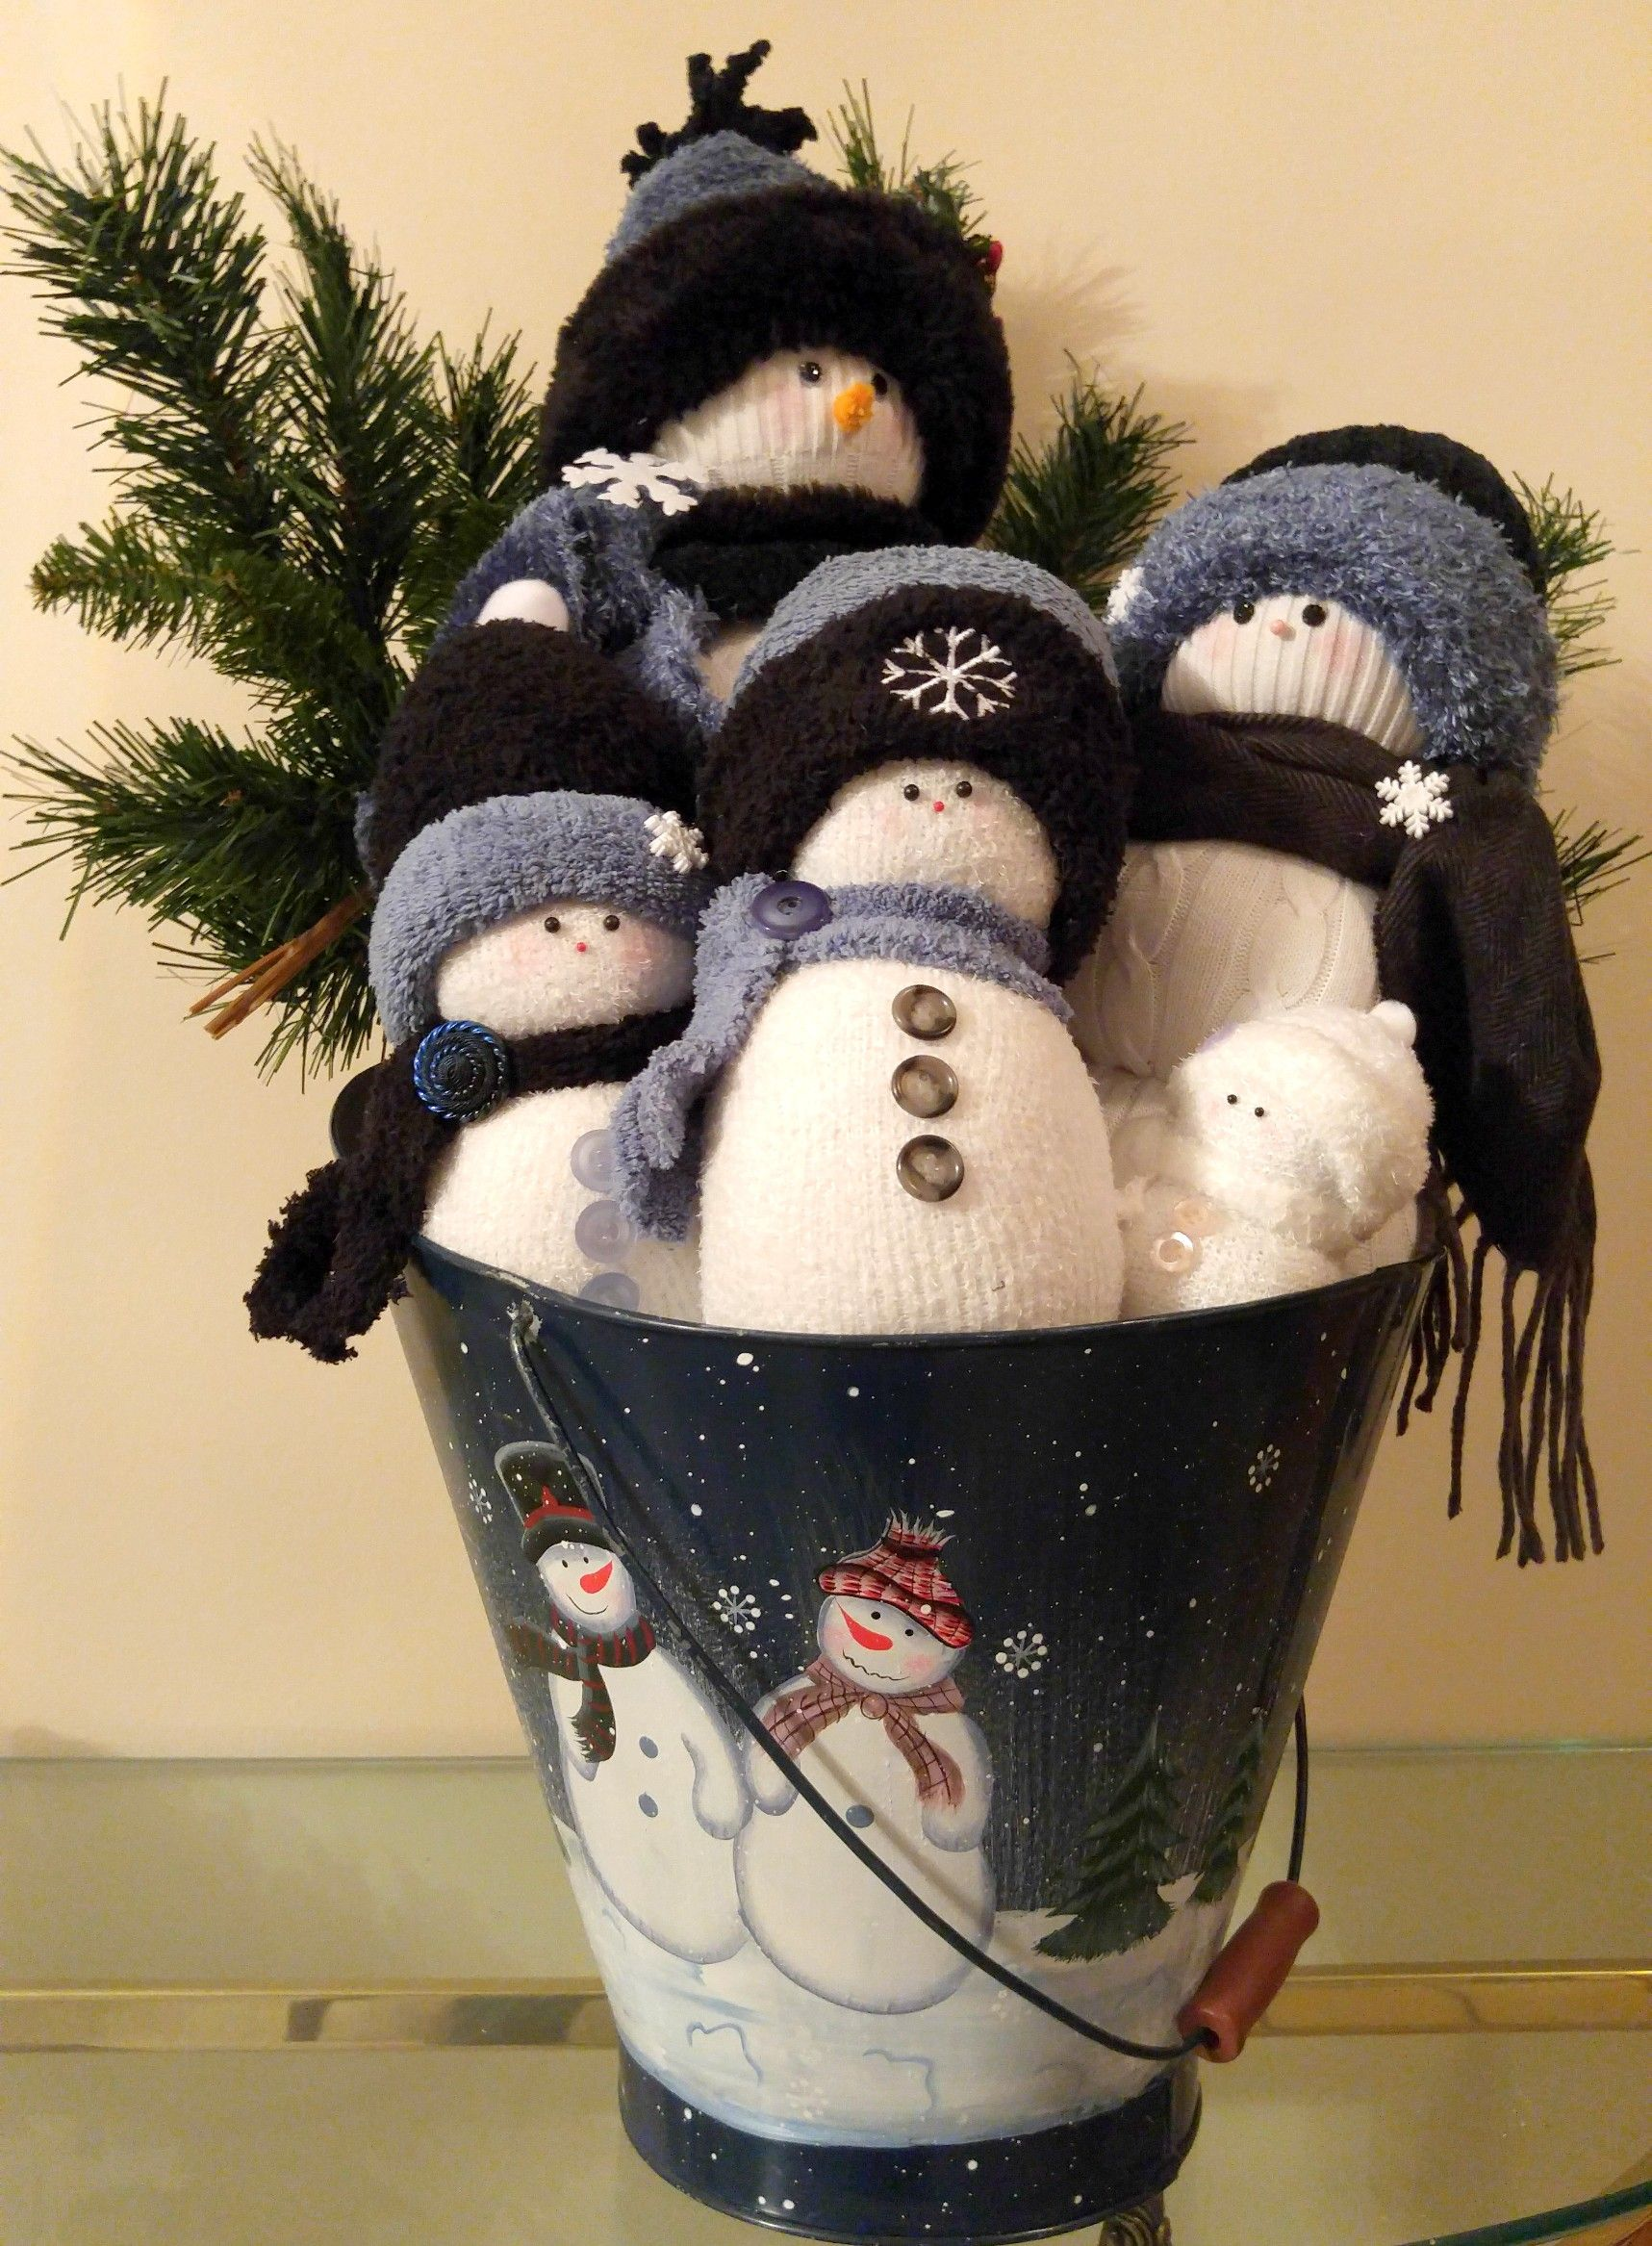 Snow family of 5, handcrafted of new socks, fabric